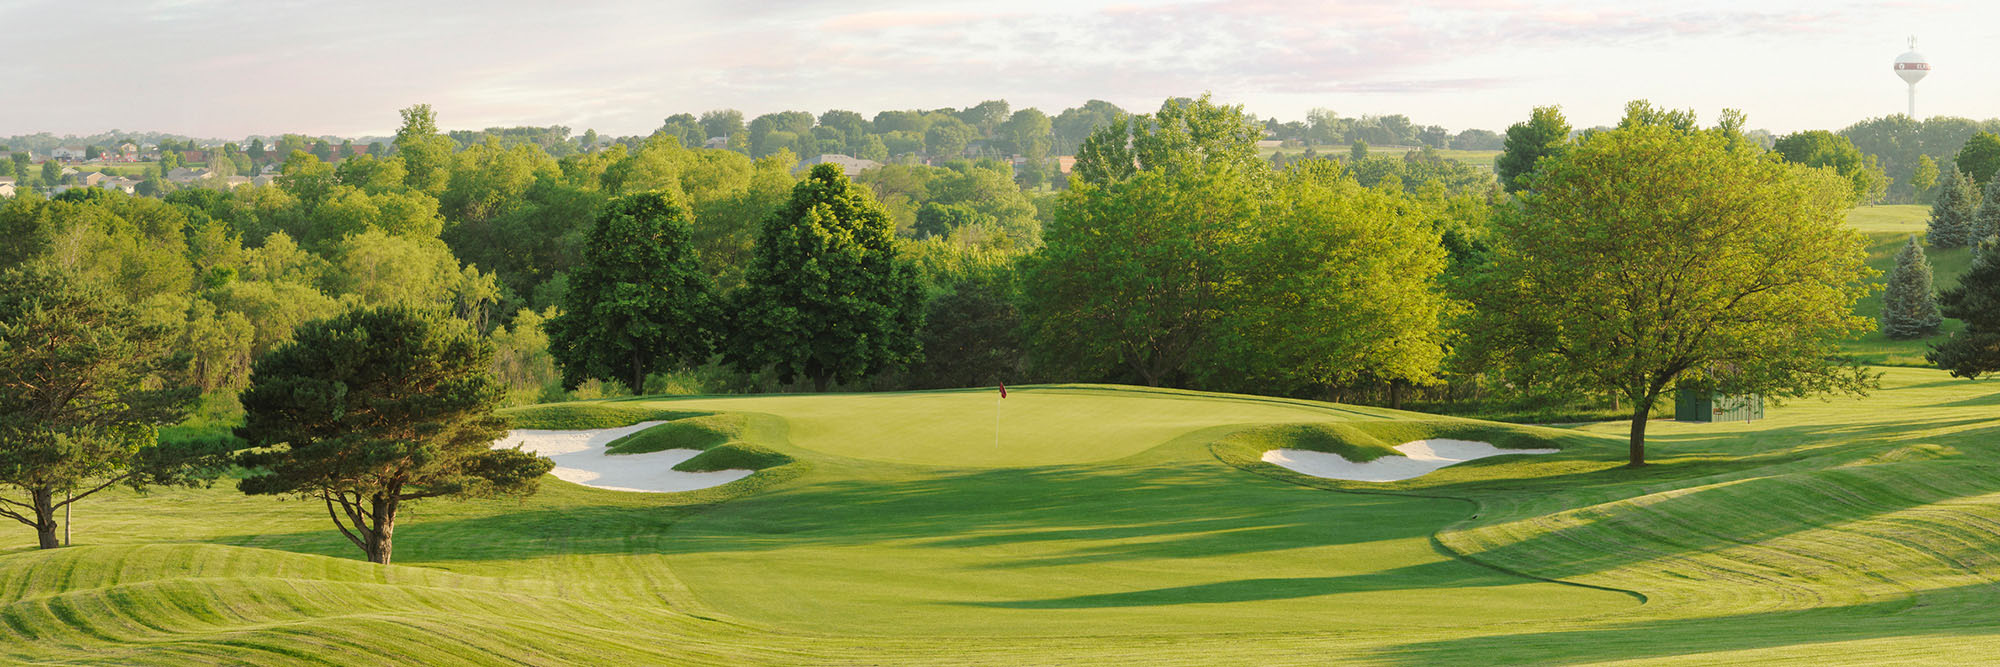 Golf Course Image - Indian Creek Red Feather No. 5